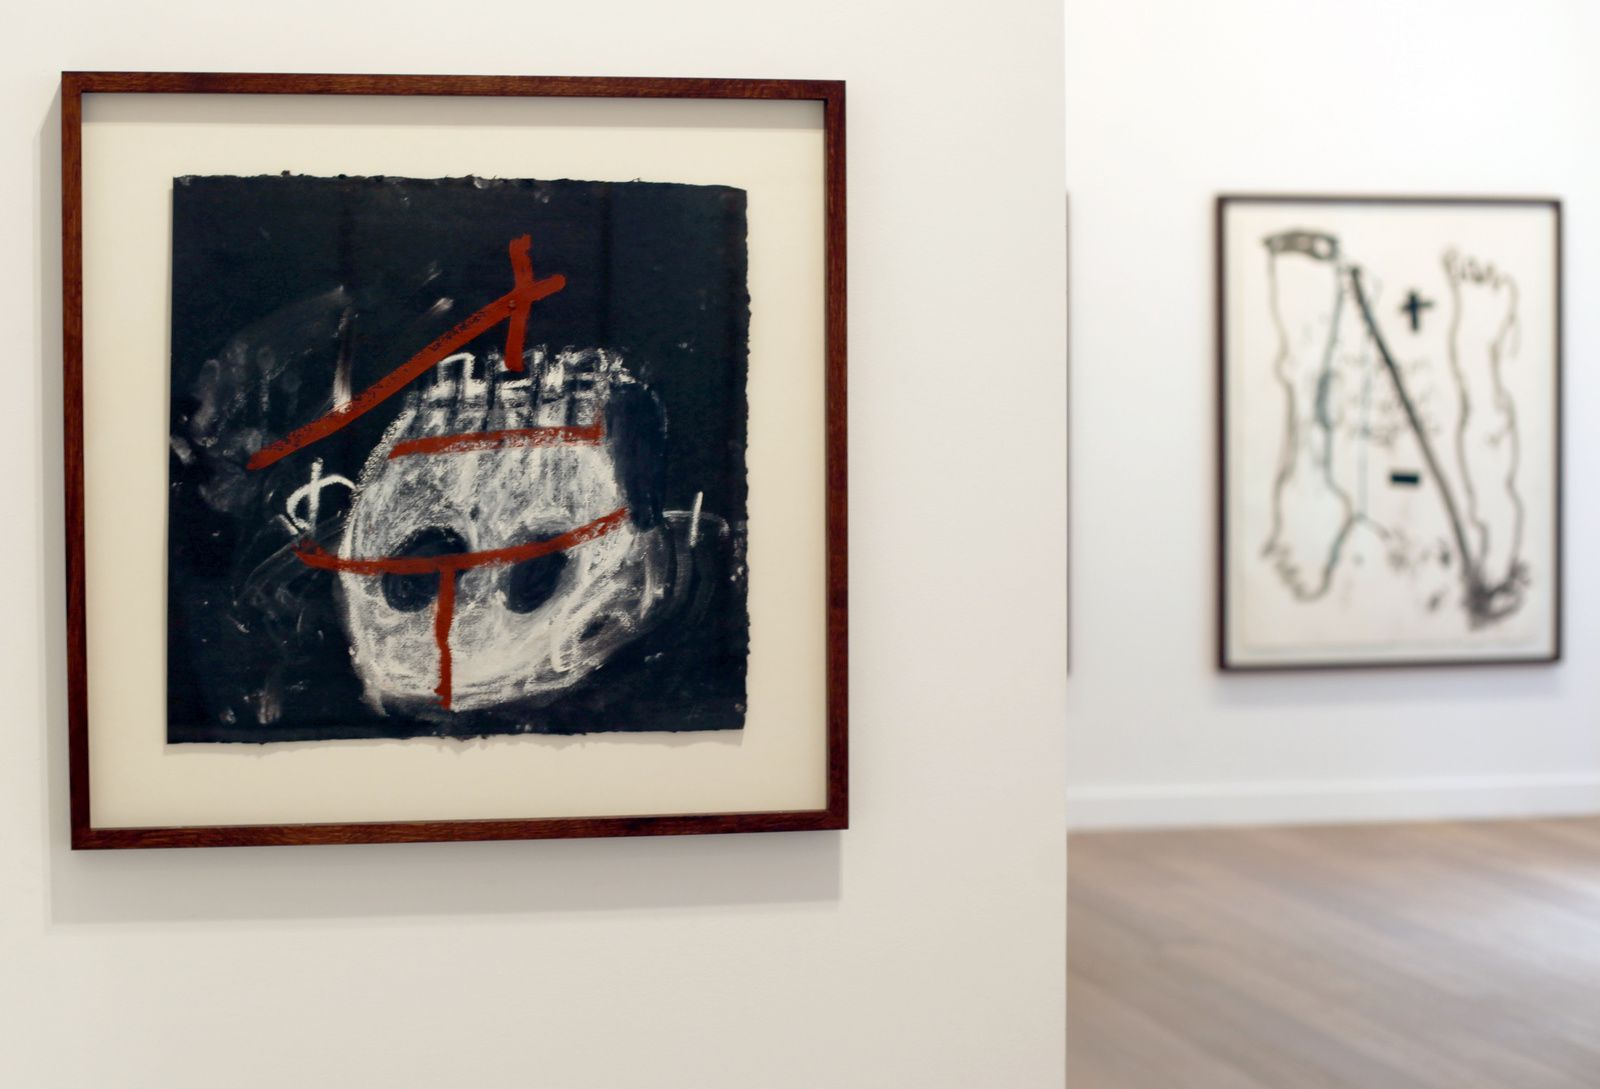 """Crani Blanc"", 2006 d'Antoni TÀPIES - Courtesy Galerie Lelong © Photo Éric Simon"